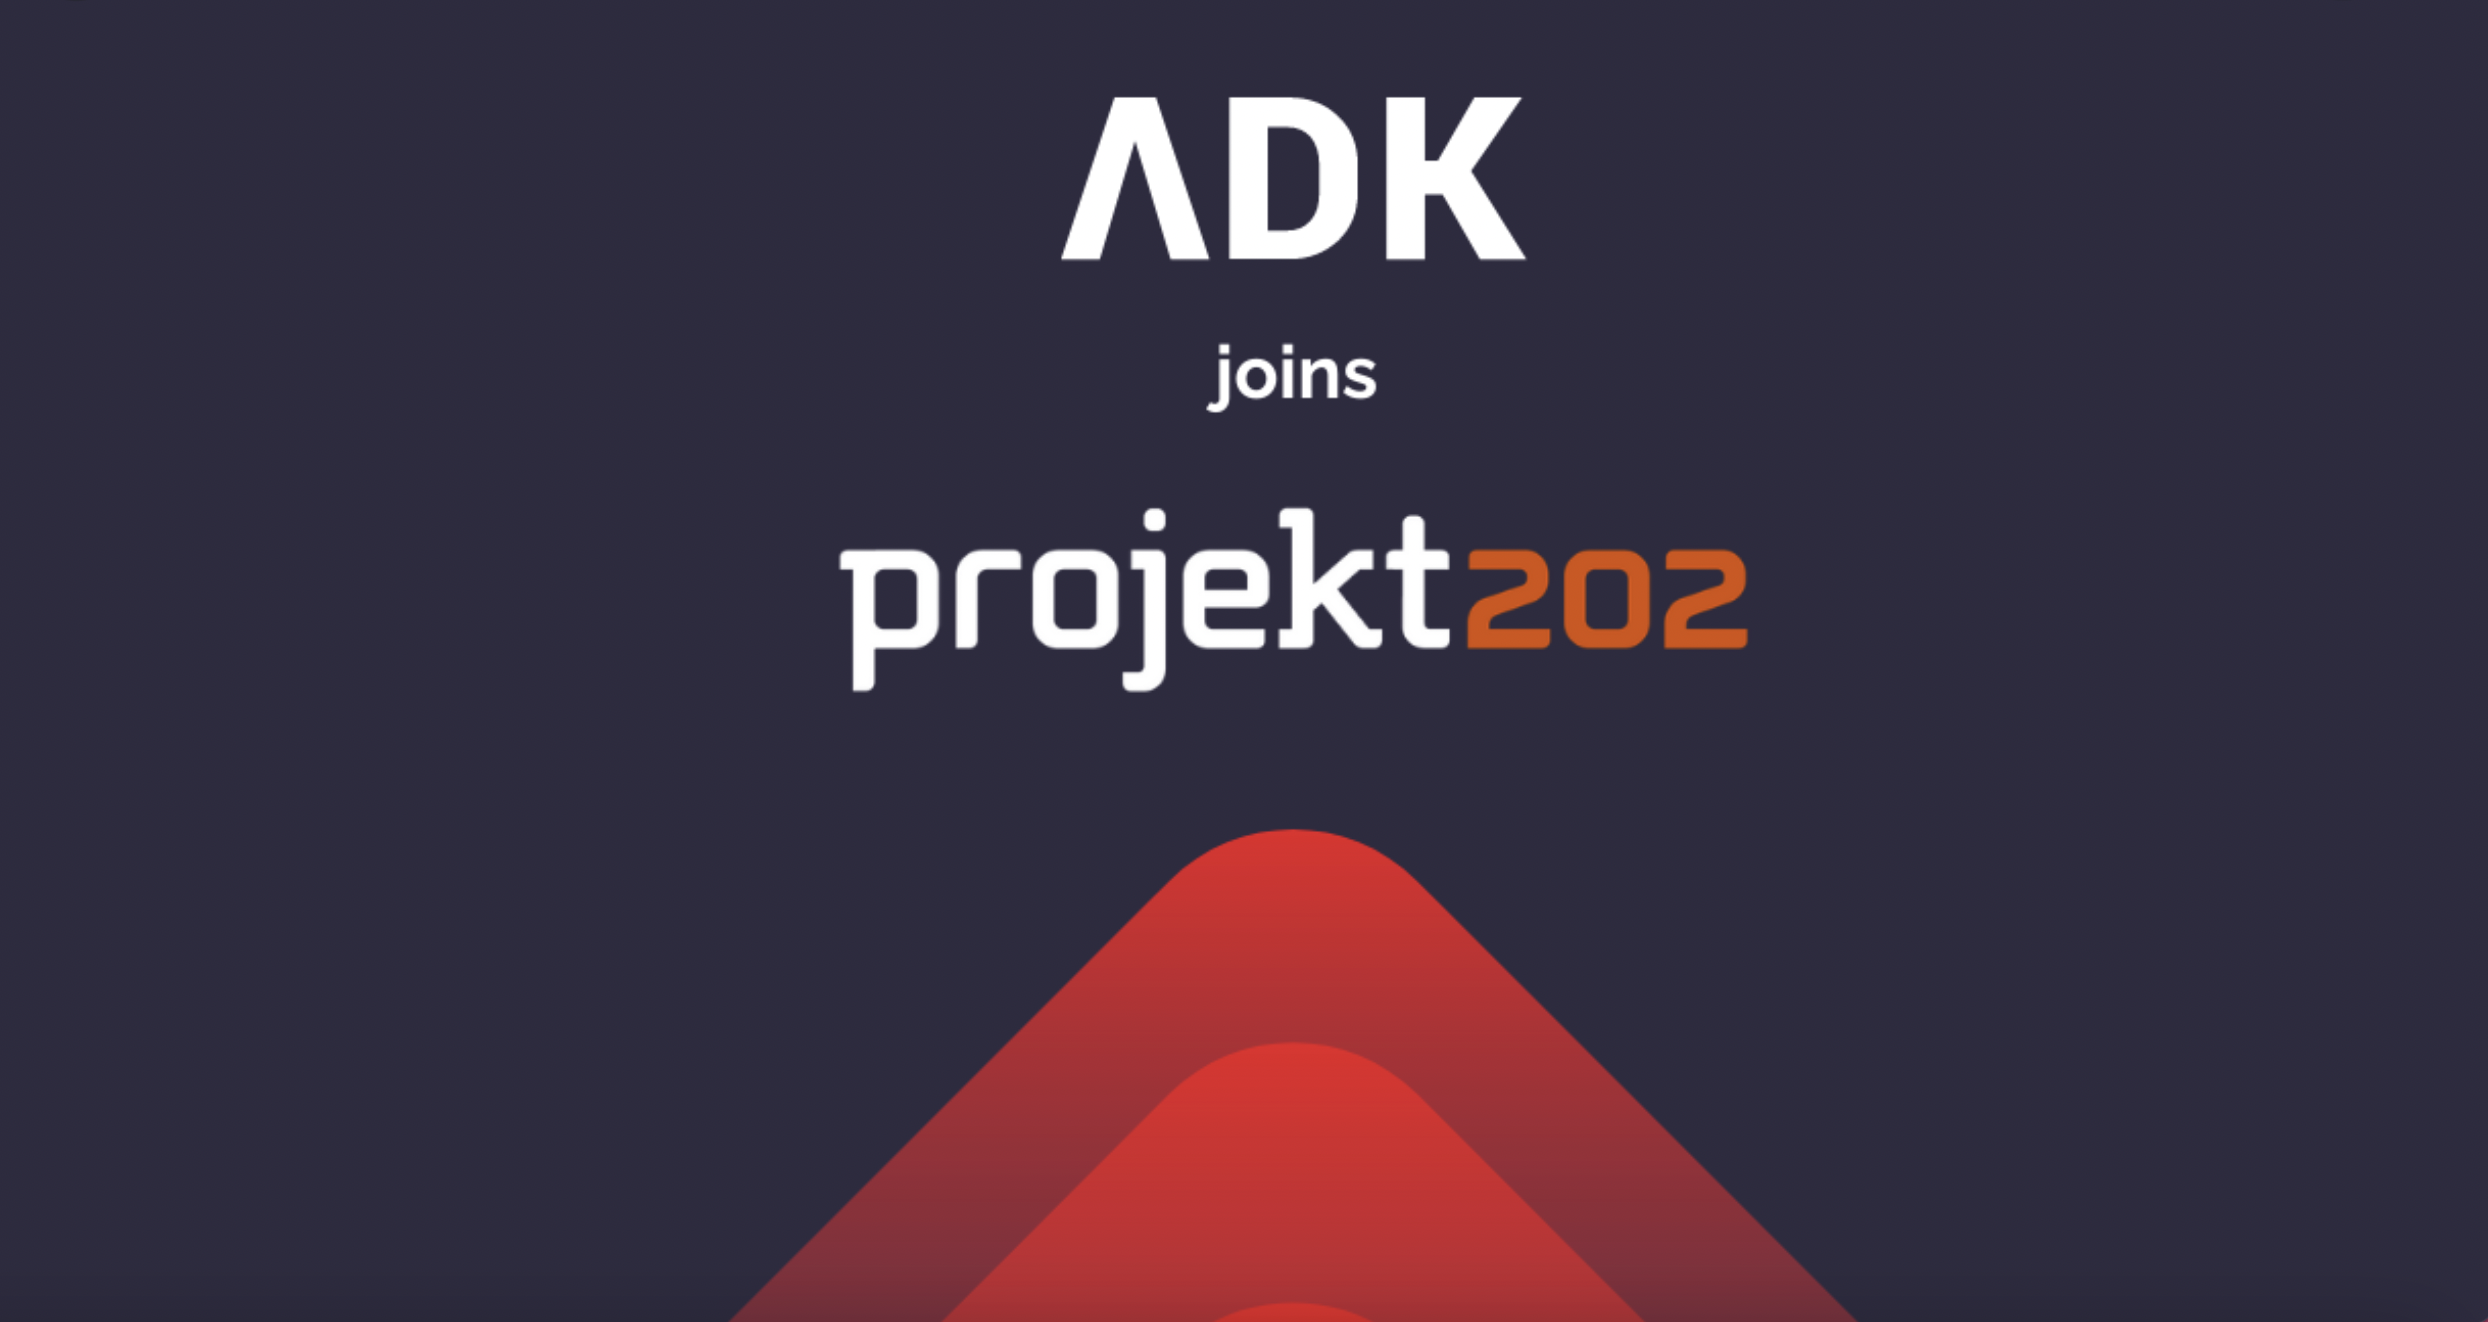 ADK Group Joins Global Experience-Driven Transformation Leader projekt202